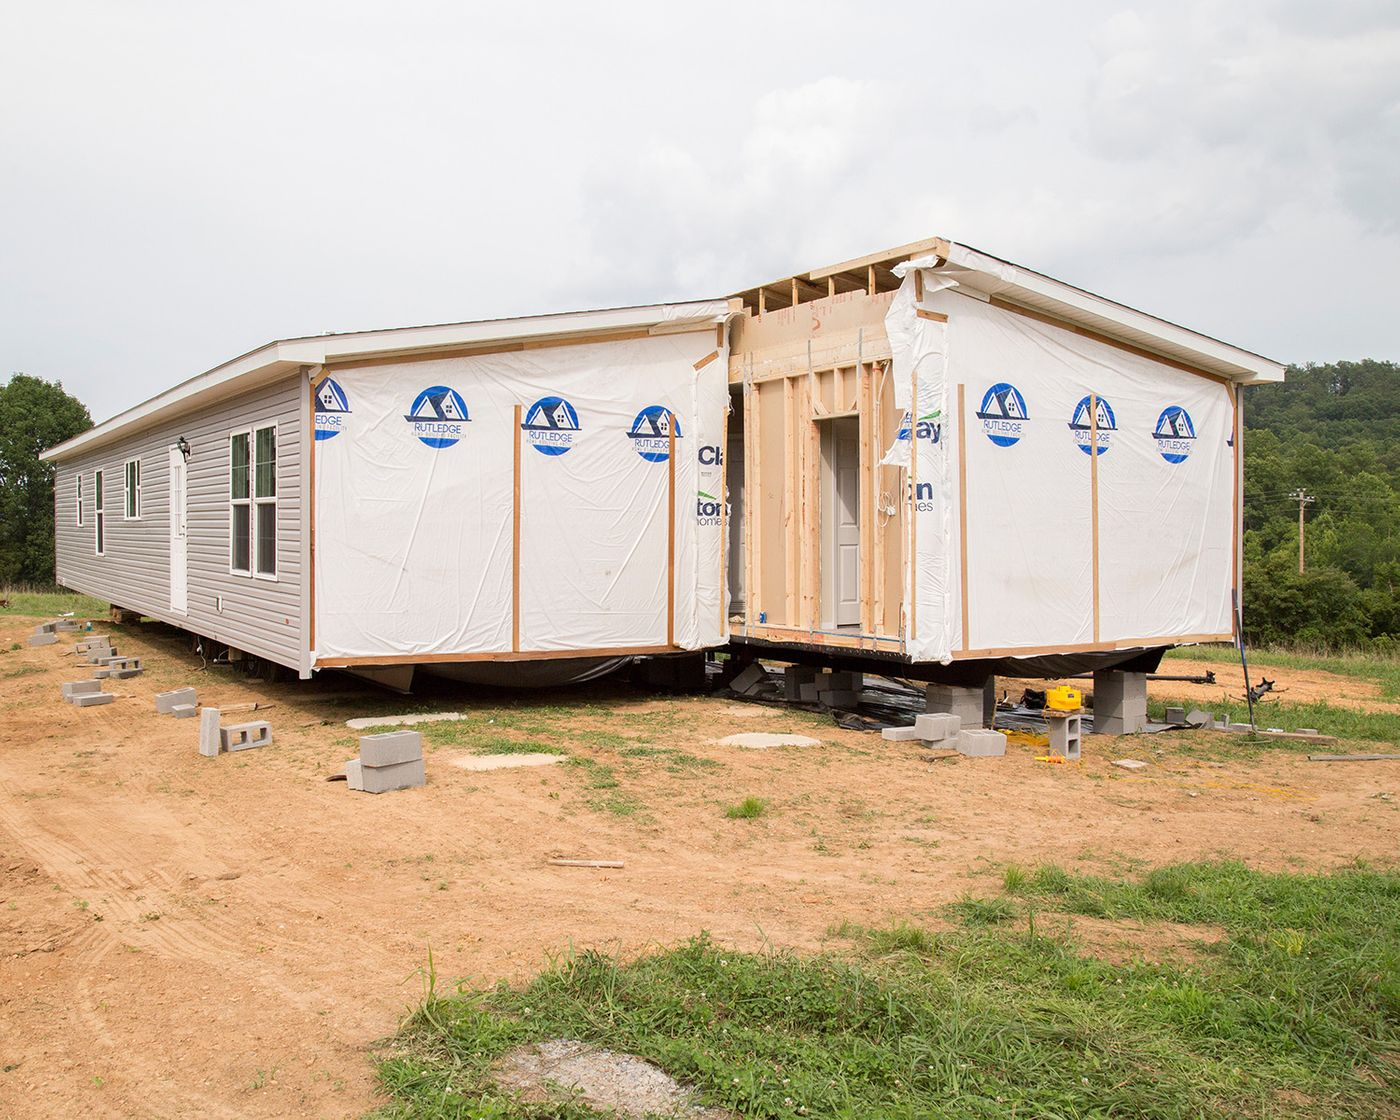 Setting up a mobile home in Texas